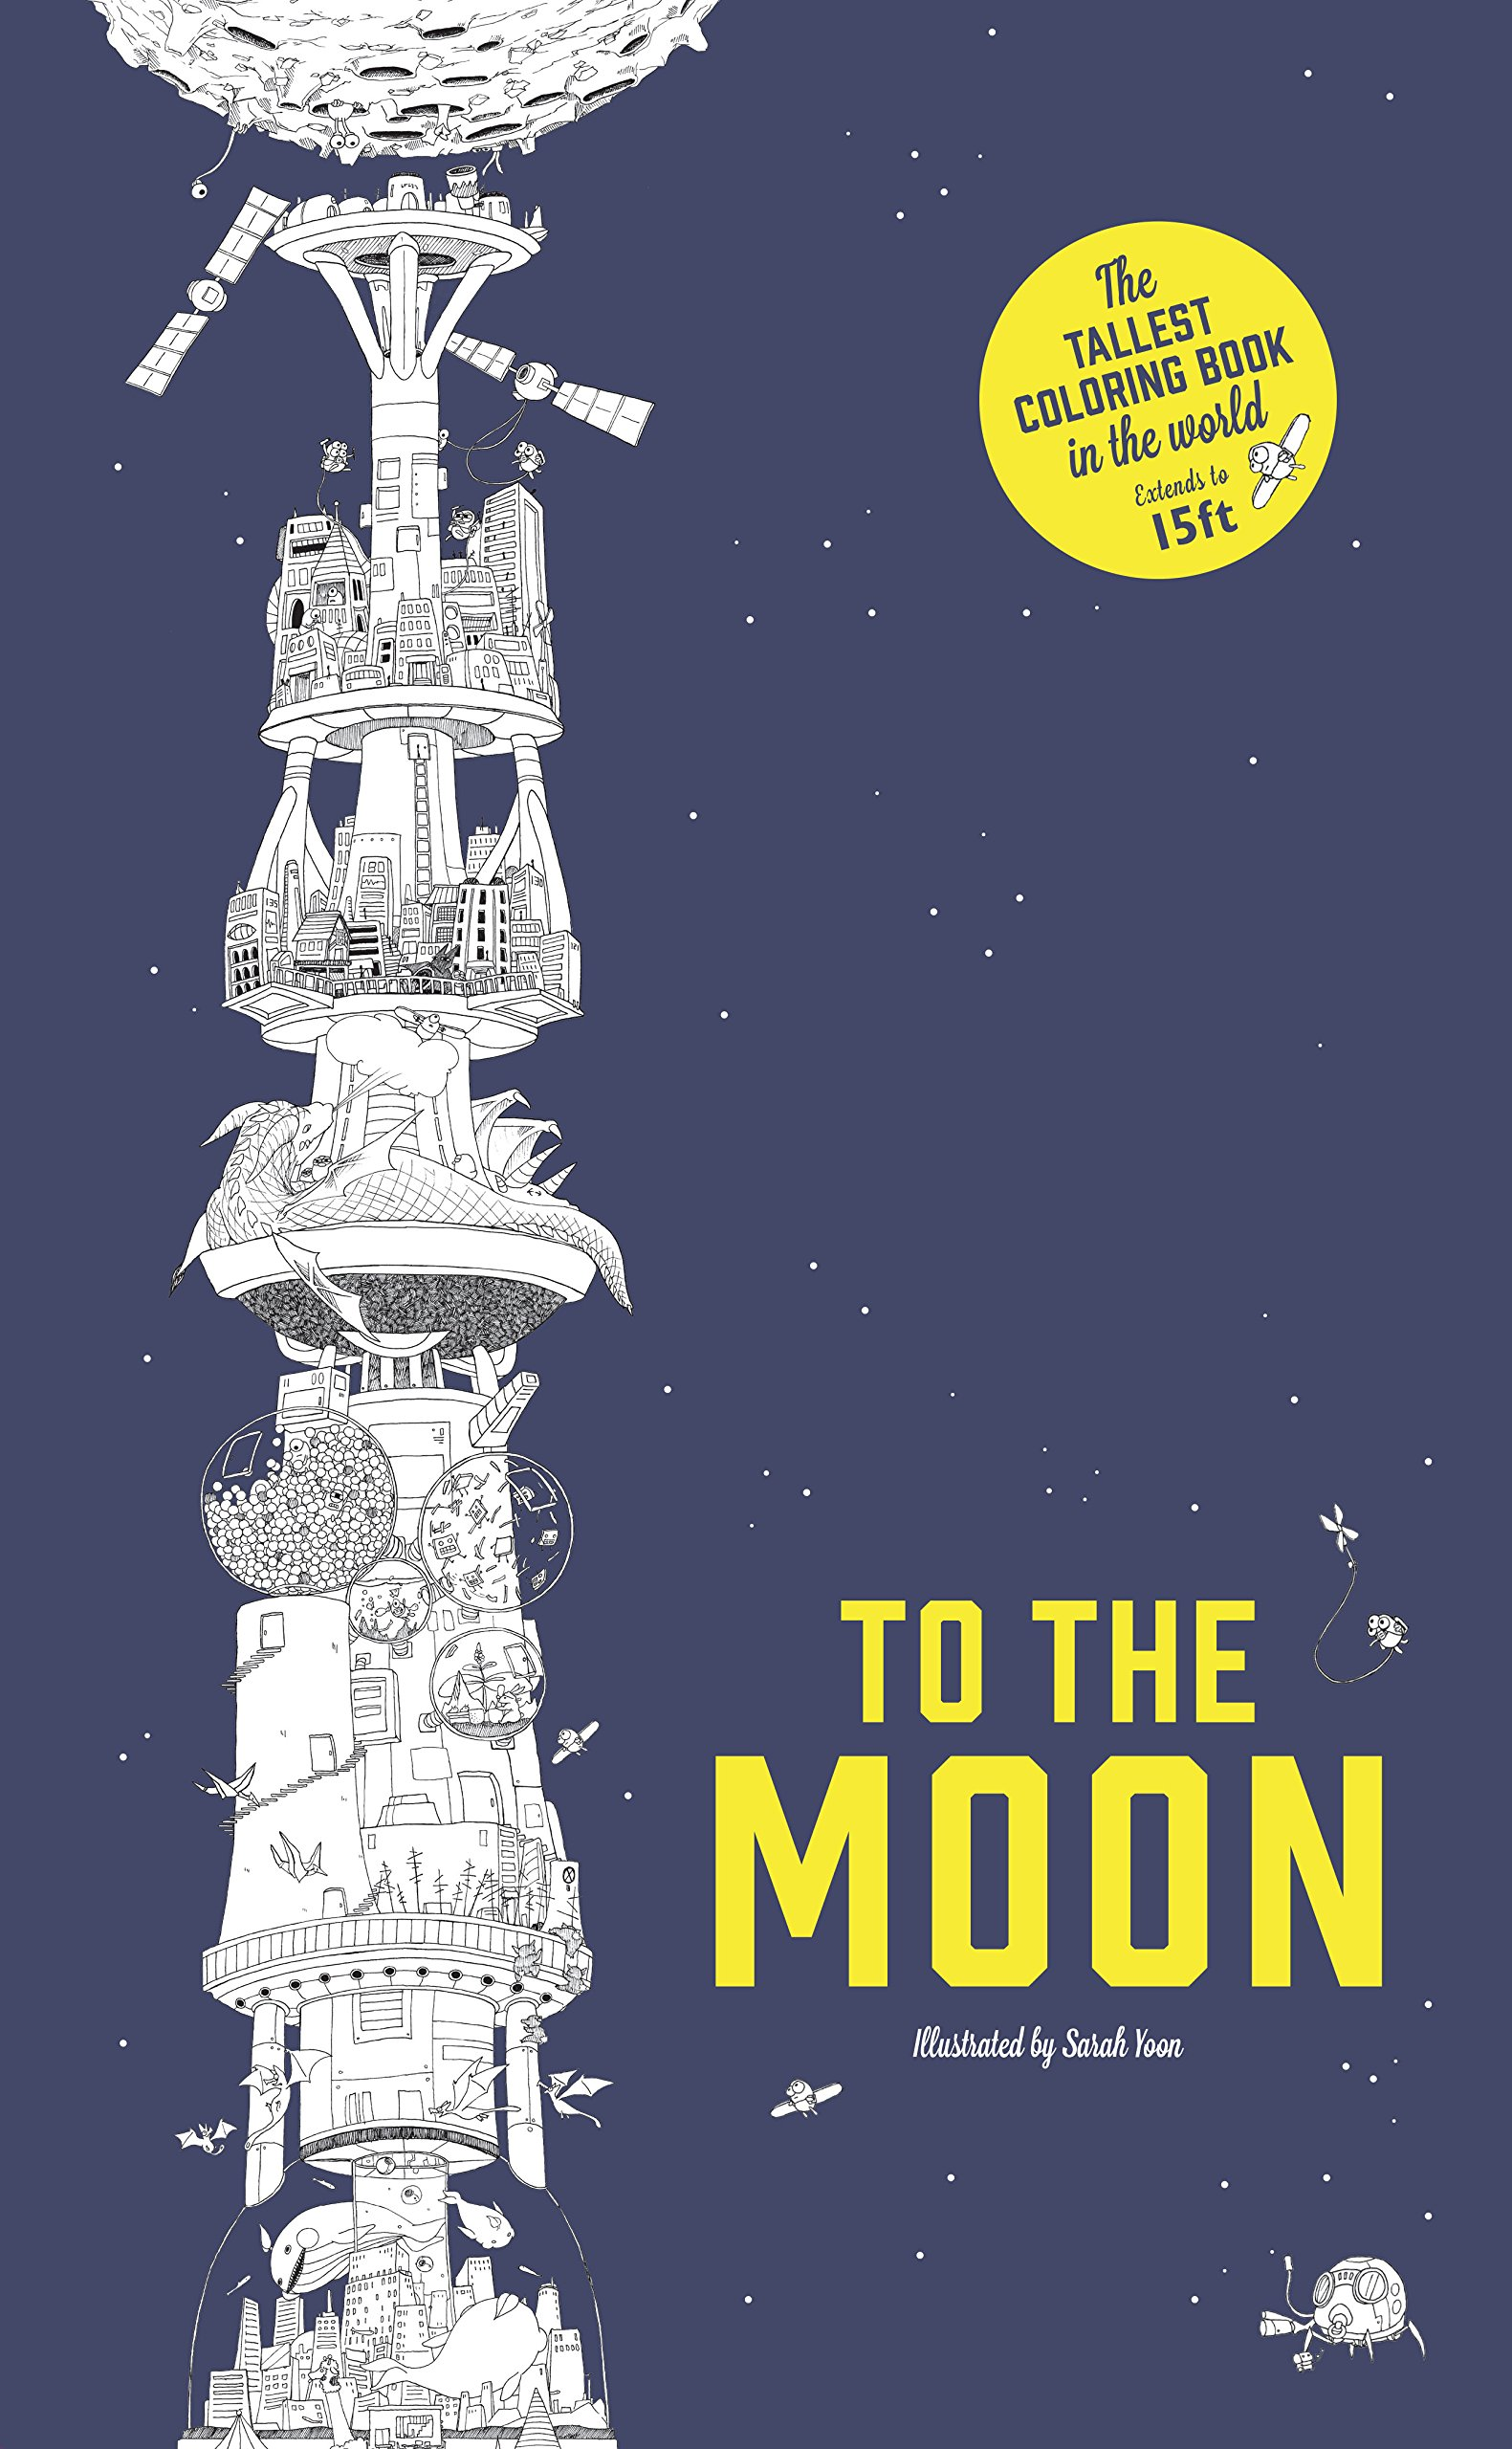 To The Moon The Tallest Coloring Book In The World Sarah